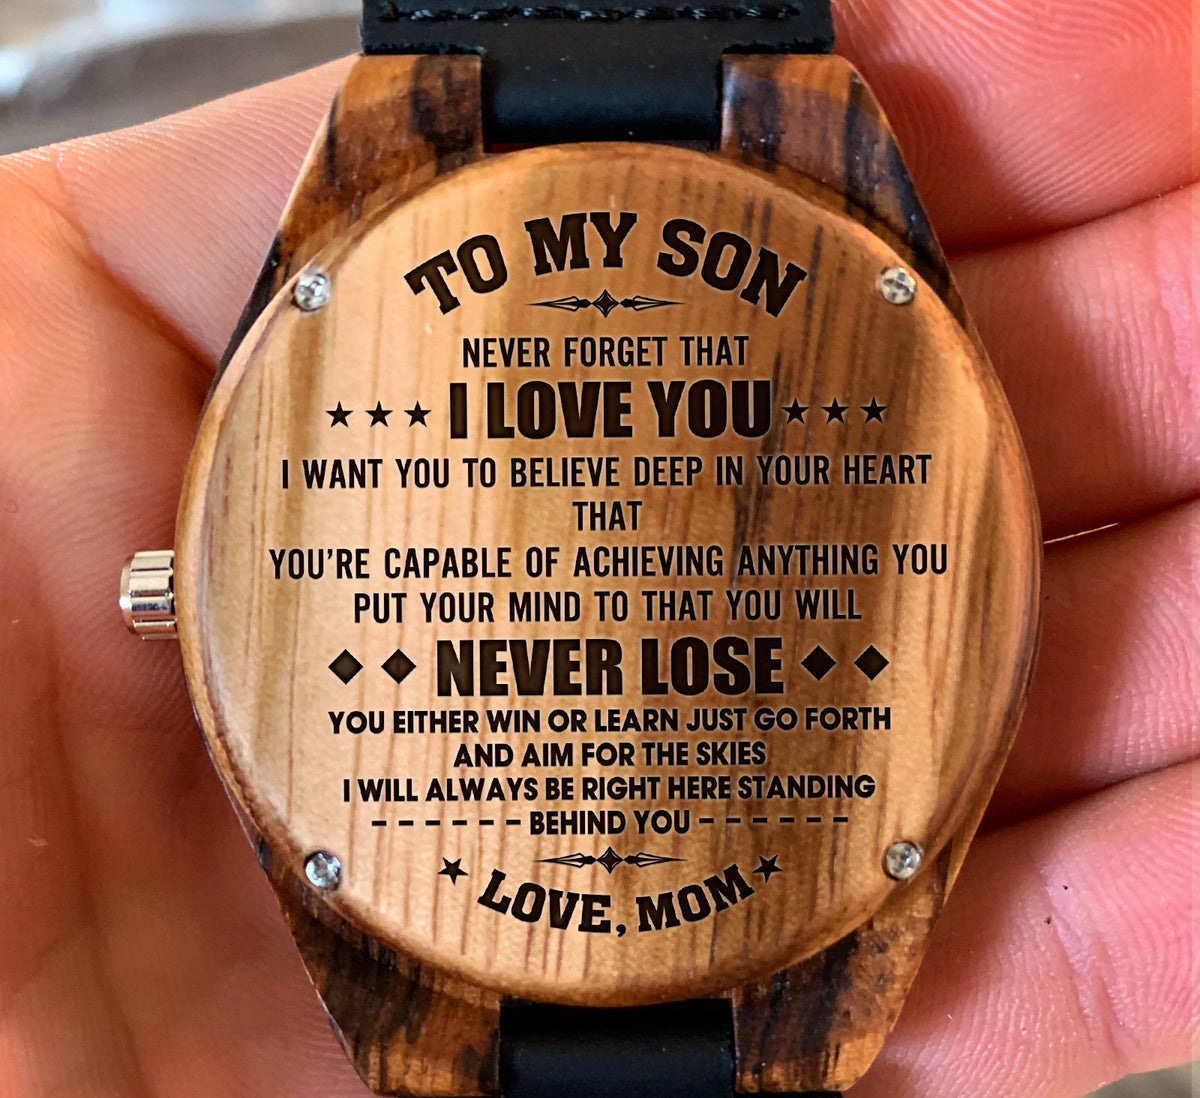 To My Son - I Will Always be Right Here Standing Behind You - Wooden Watch